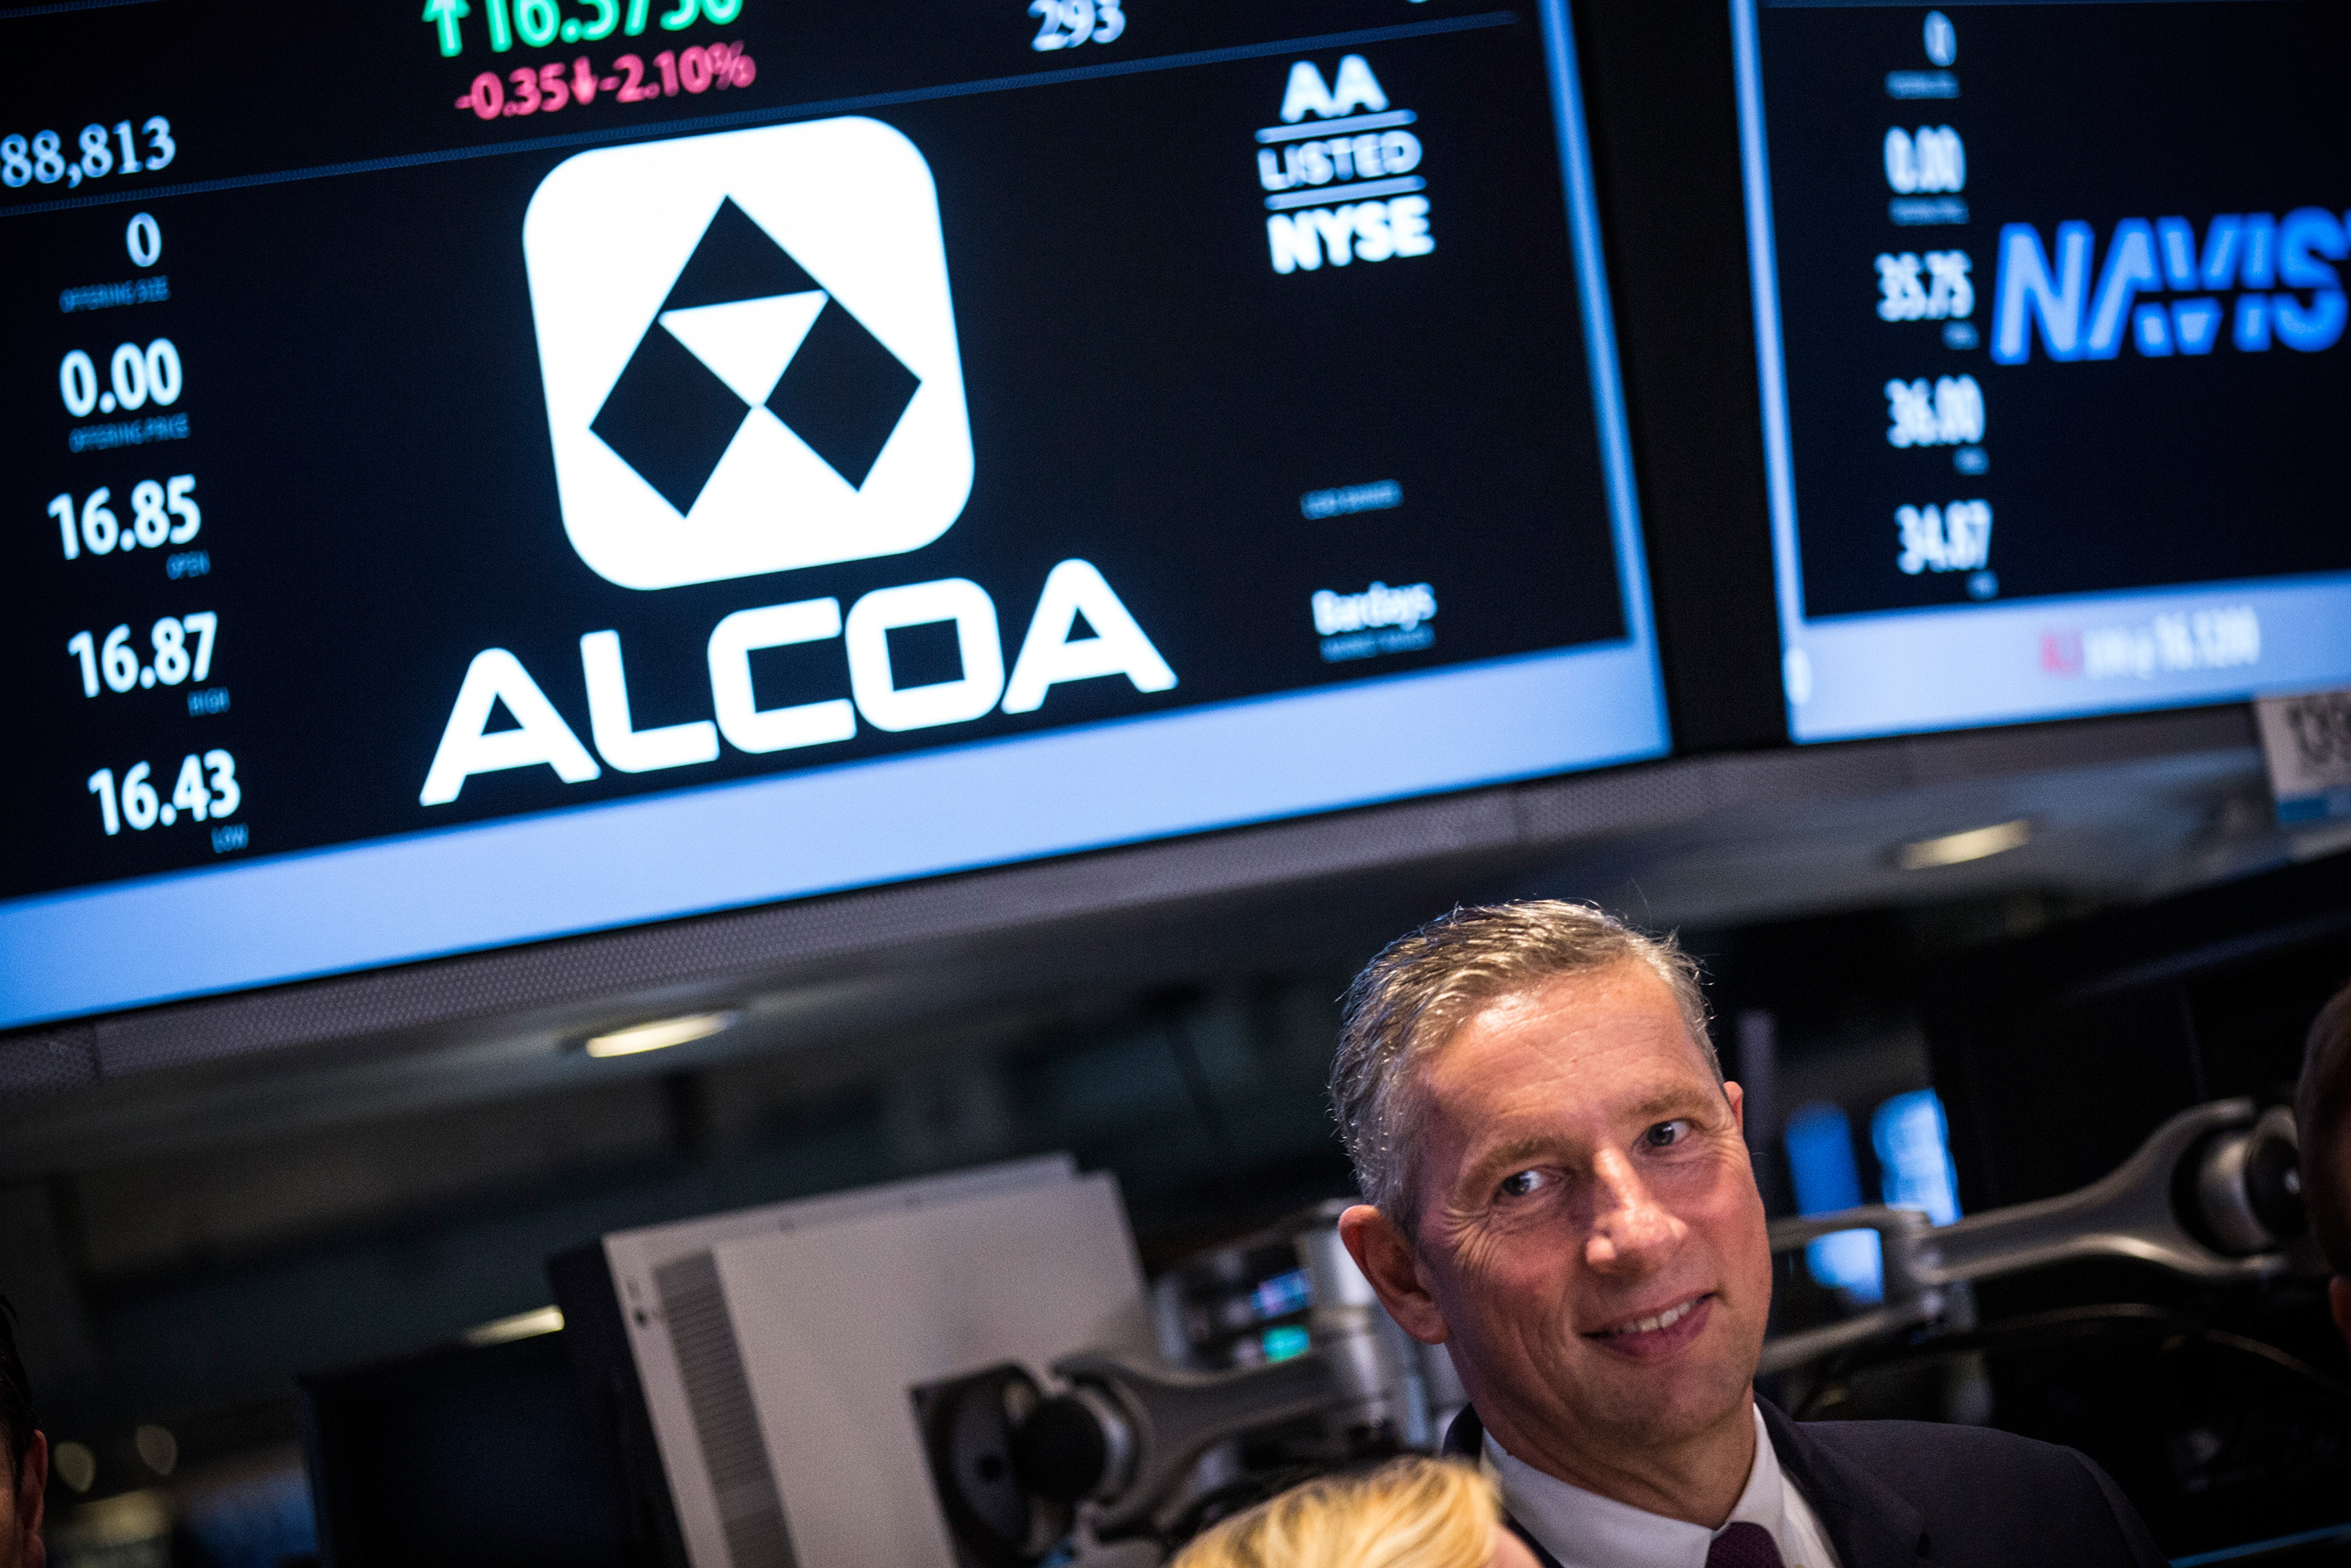 Alcoa CEO Klaus Kleinfeld Rings The Closing Bell At The New York Stock Exchange